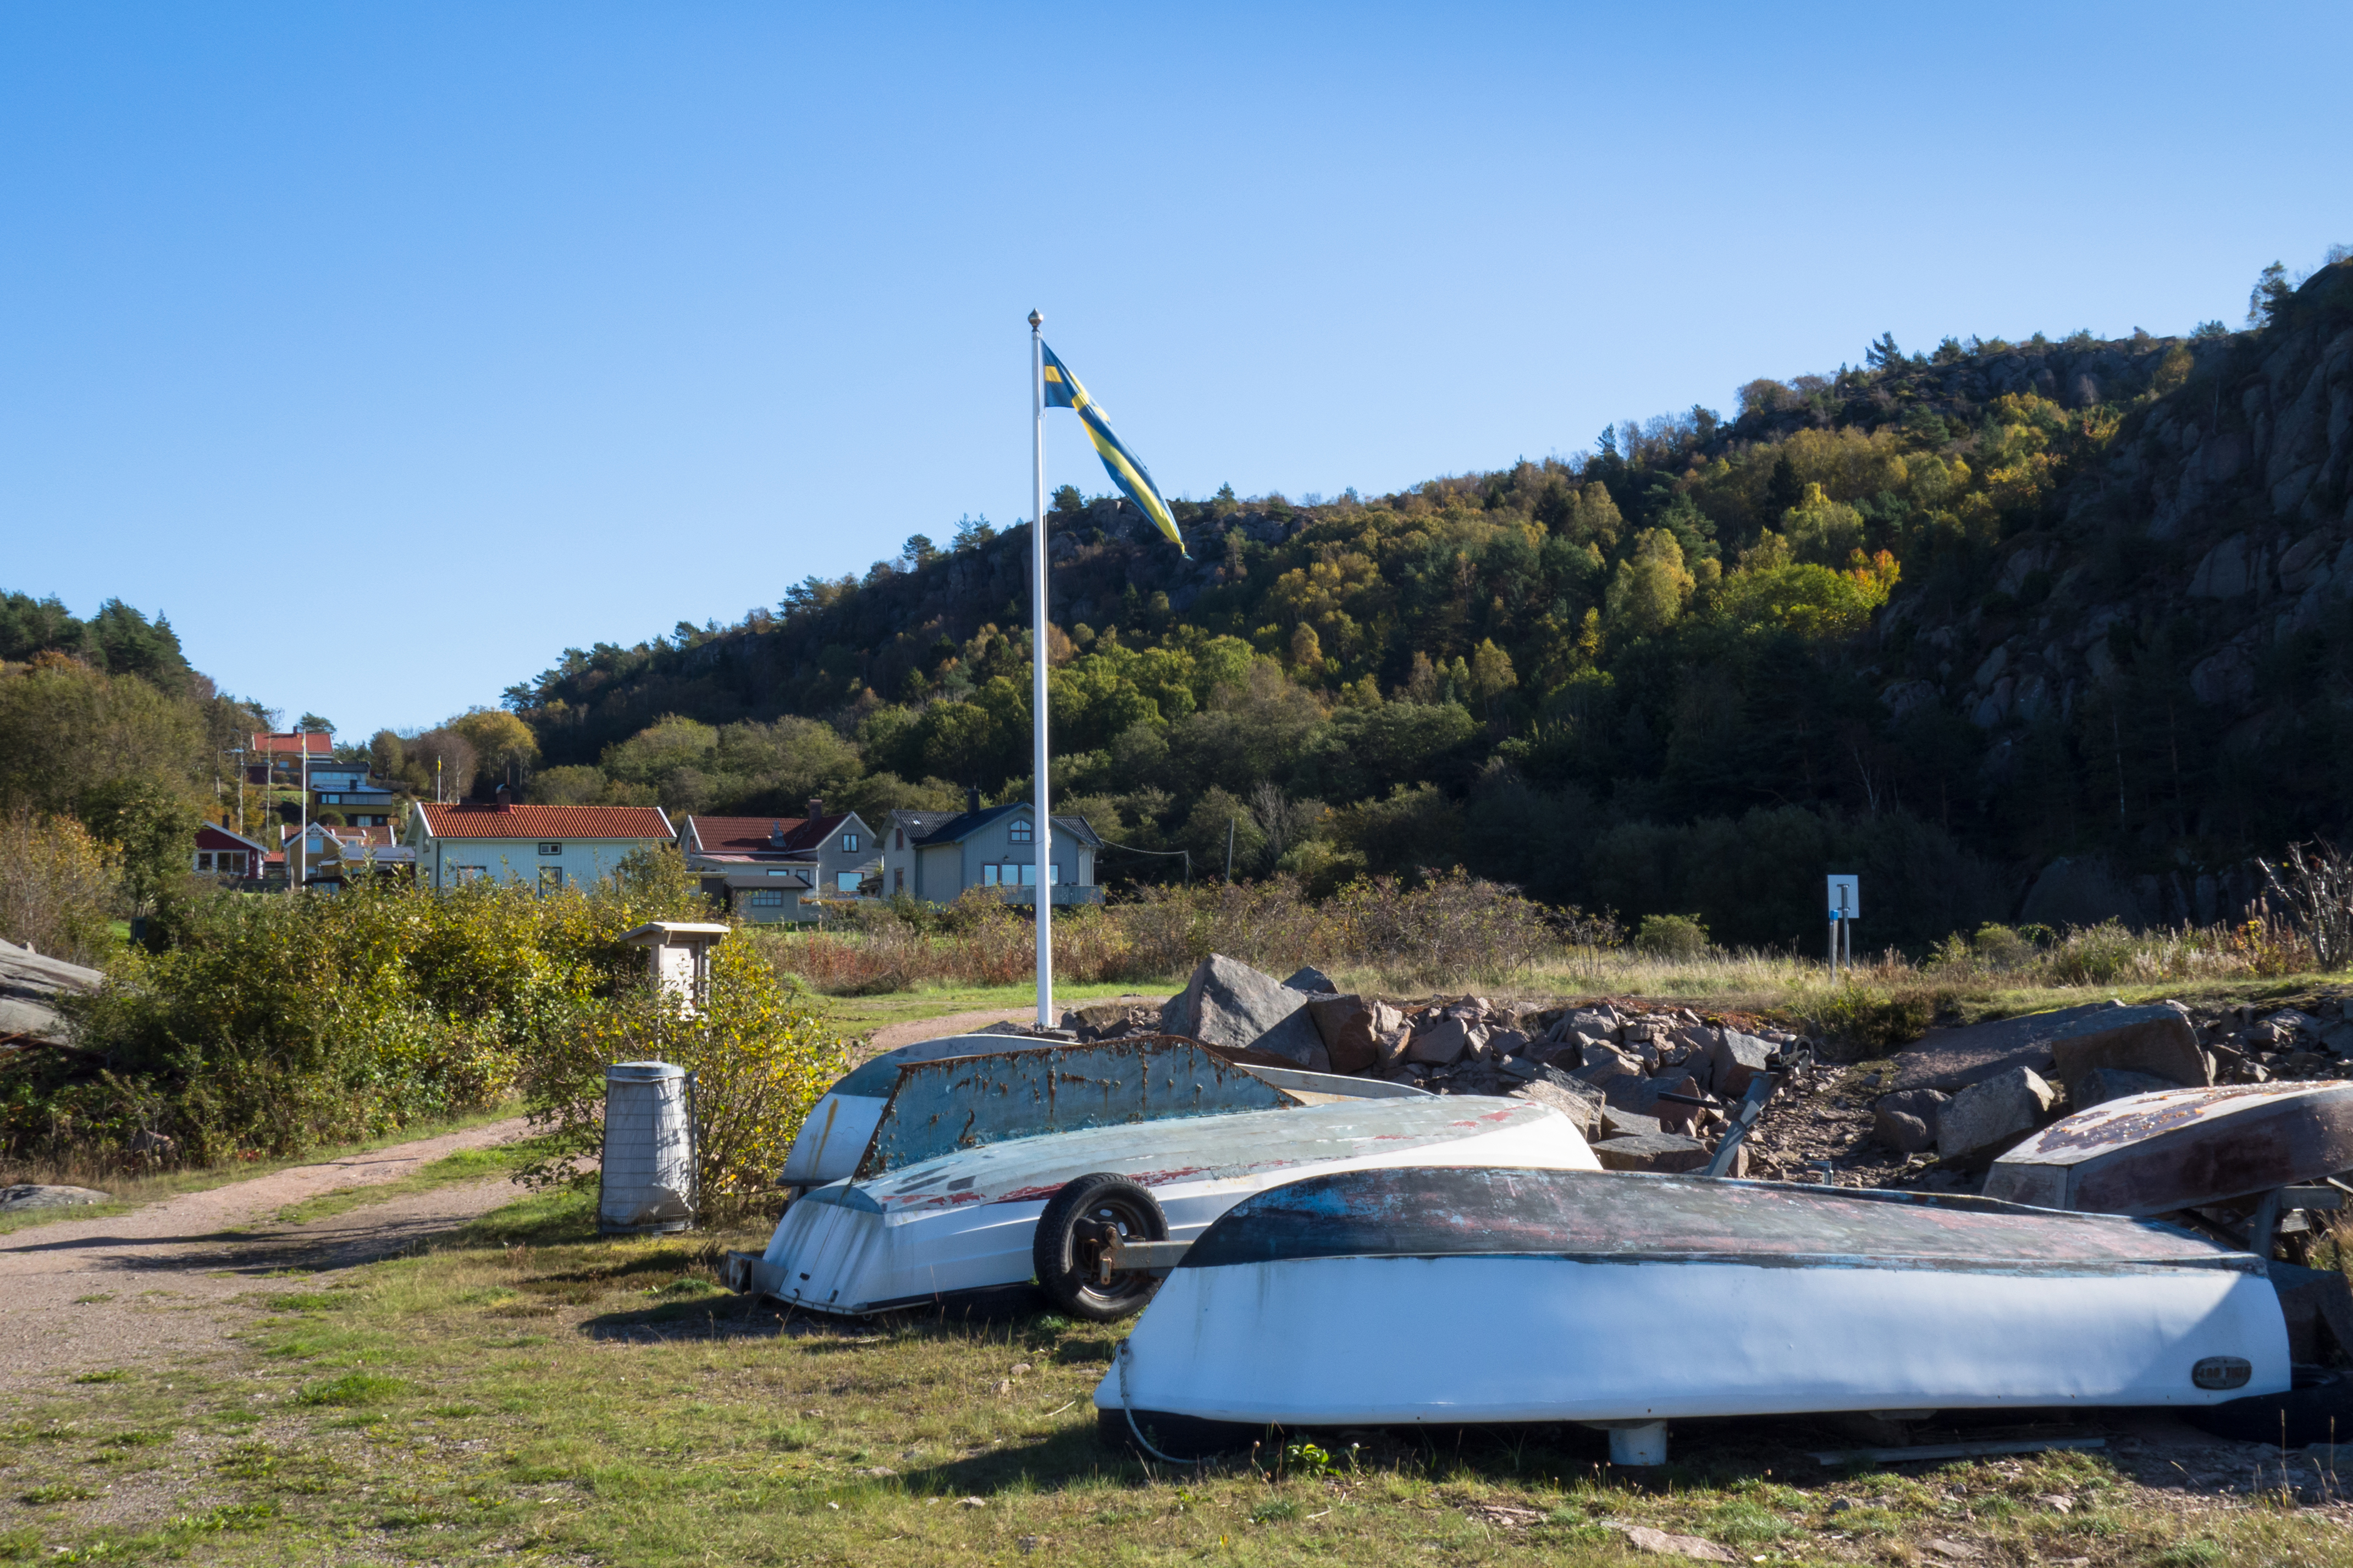 Boats up for winter in Loddebo, Boat, Boats, Car, Cliffs, HQ Photo